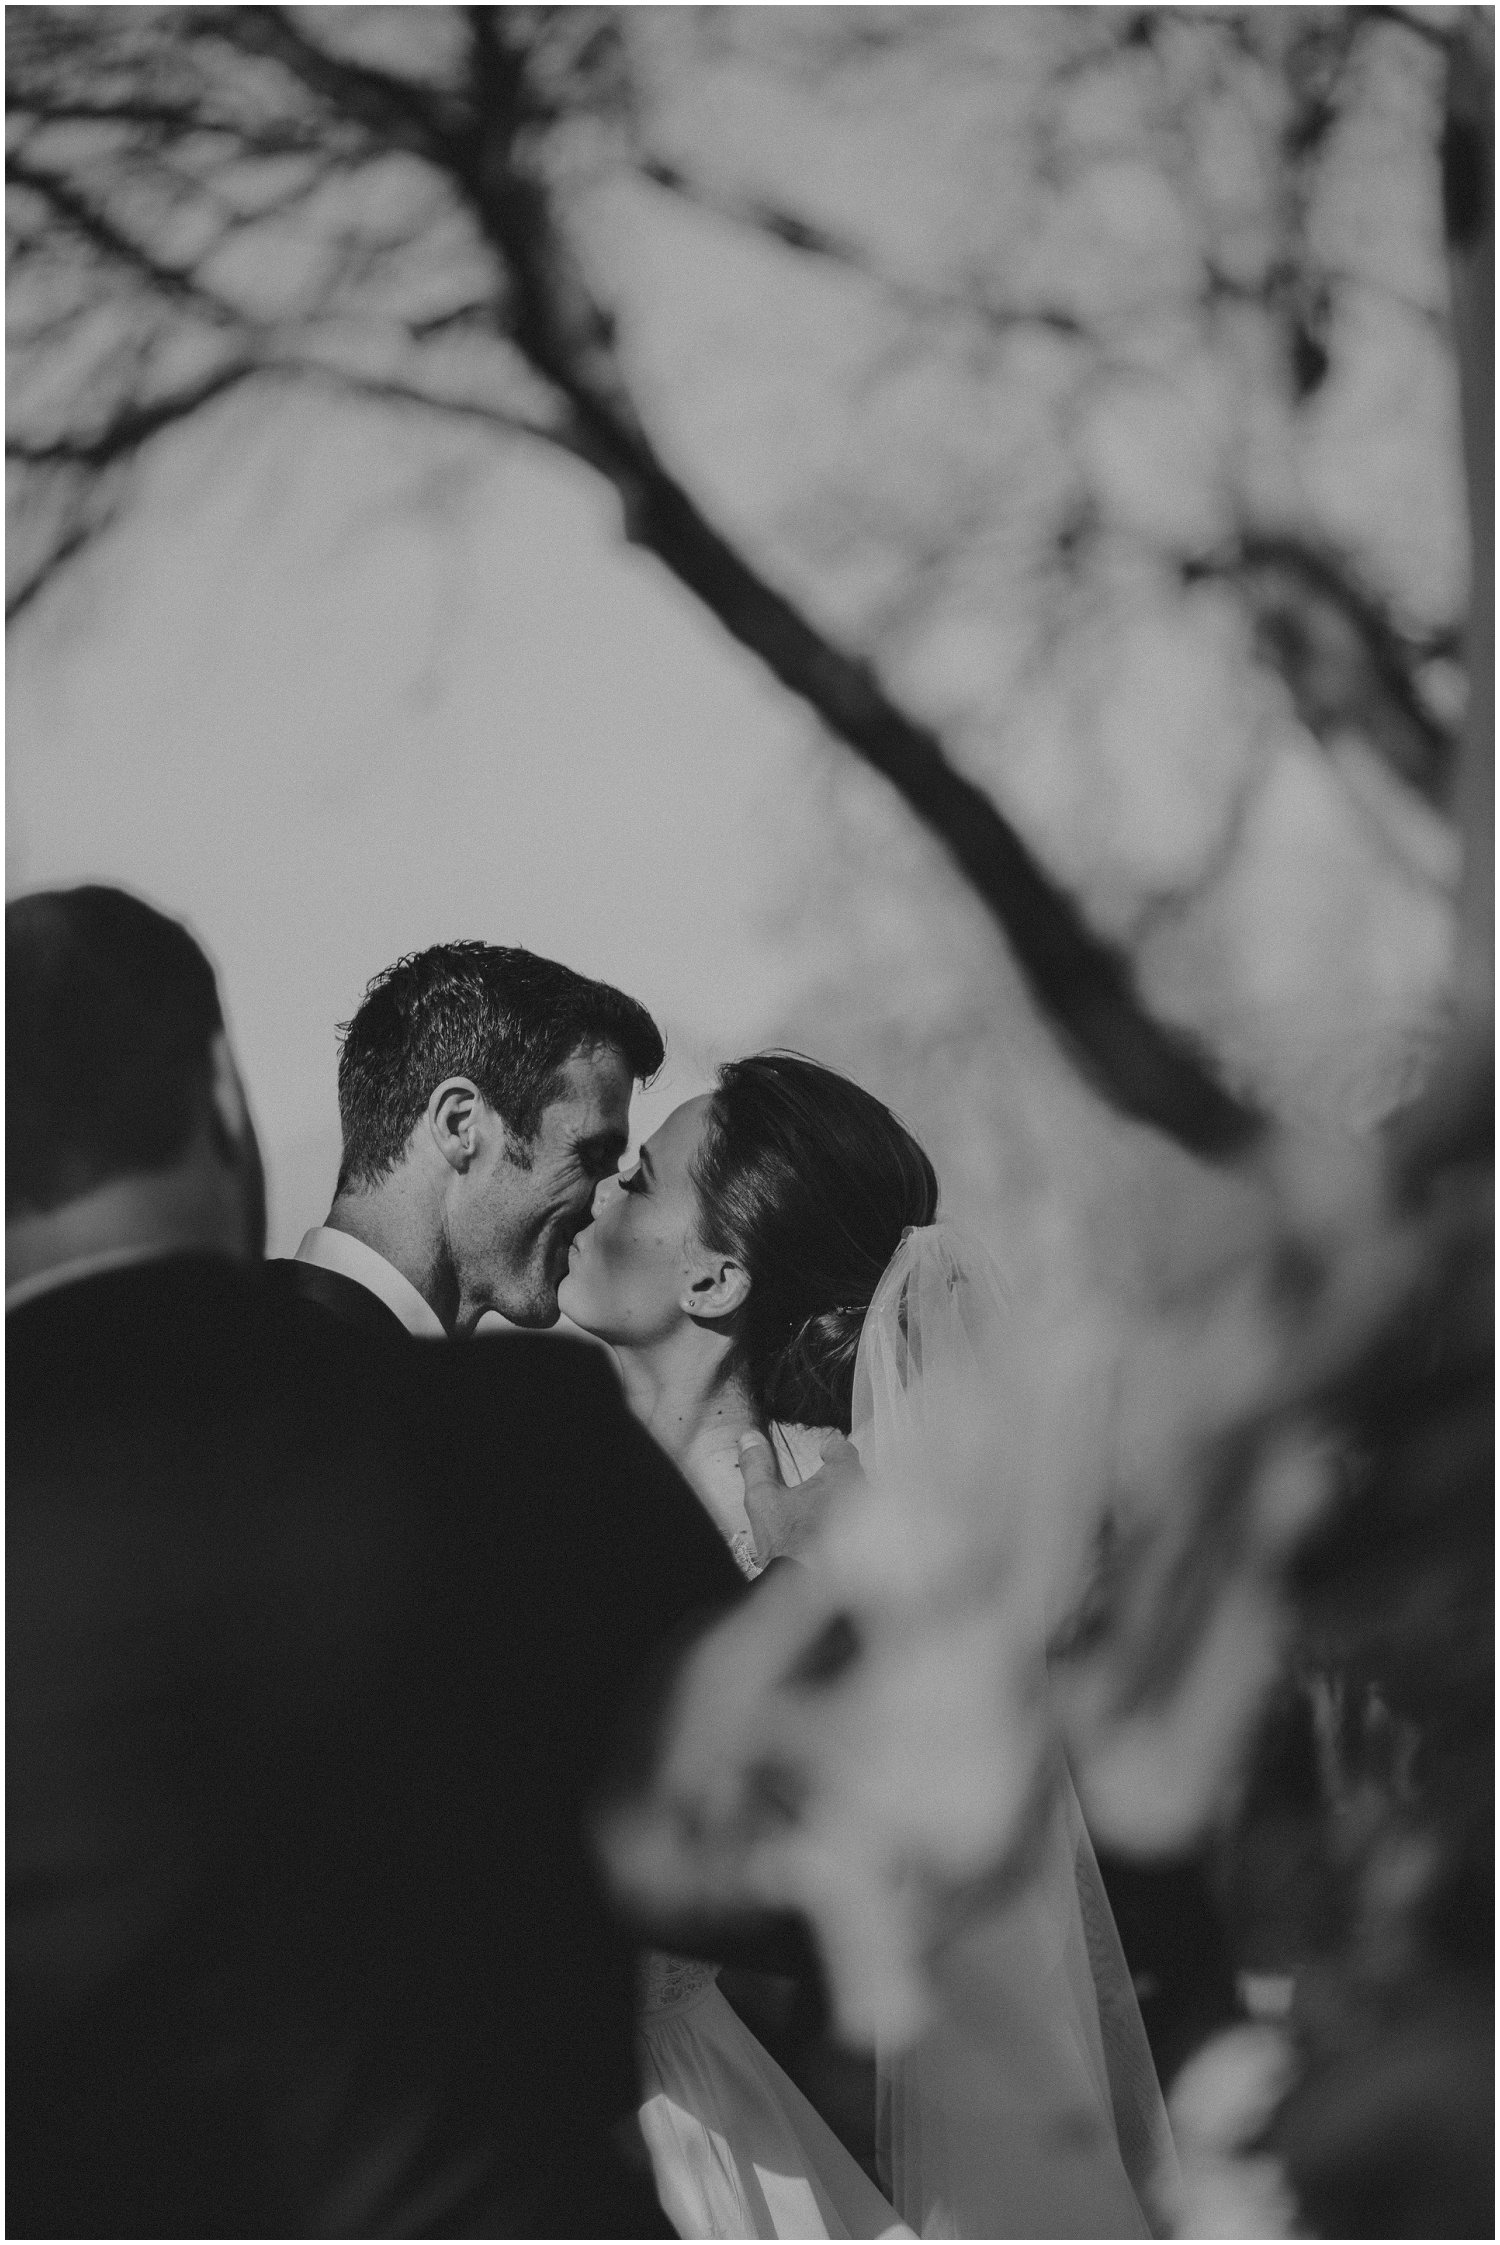 Top Wedding Photographer Cape Town South Africa Artistic Creative Documentary Wedding Photography Rue Kruger_1204.jpg